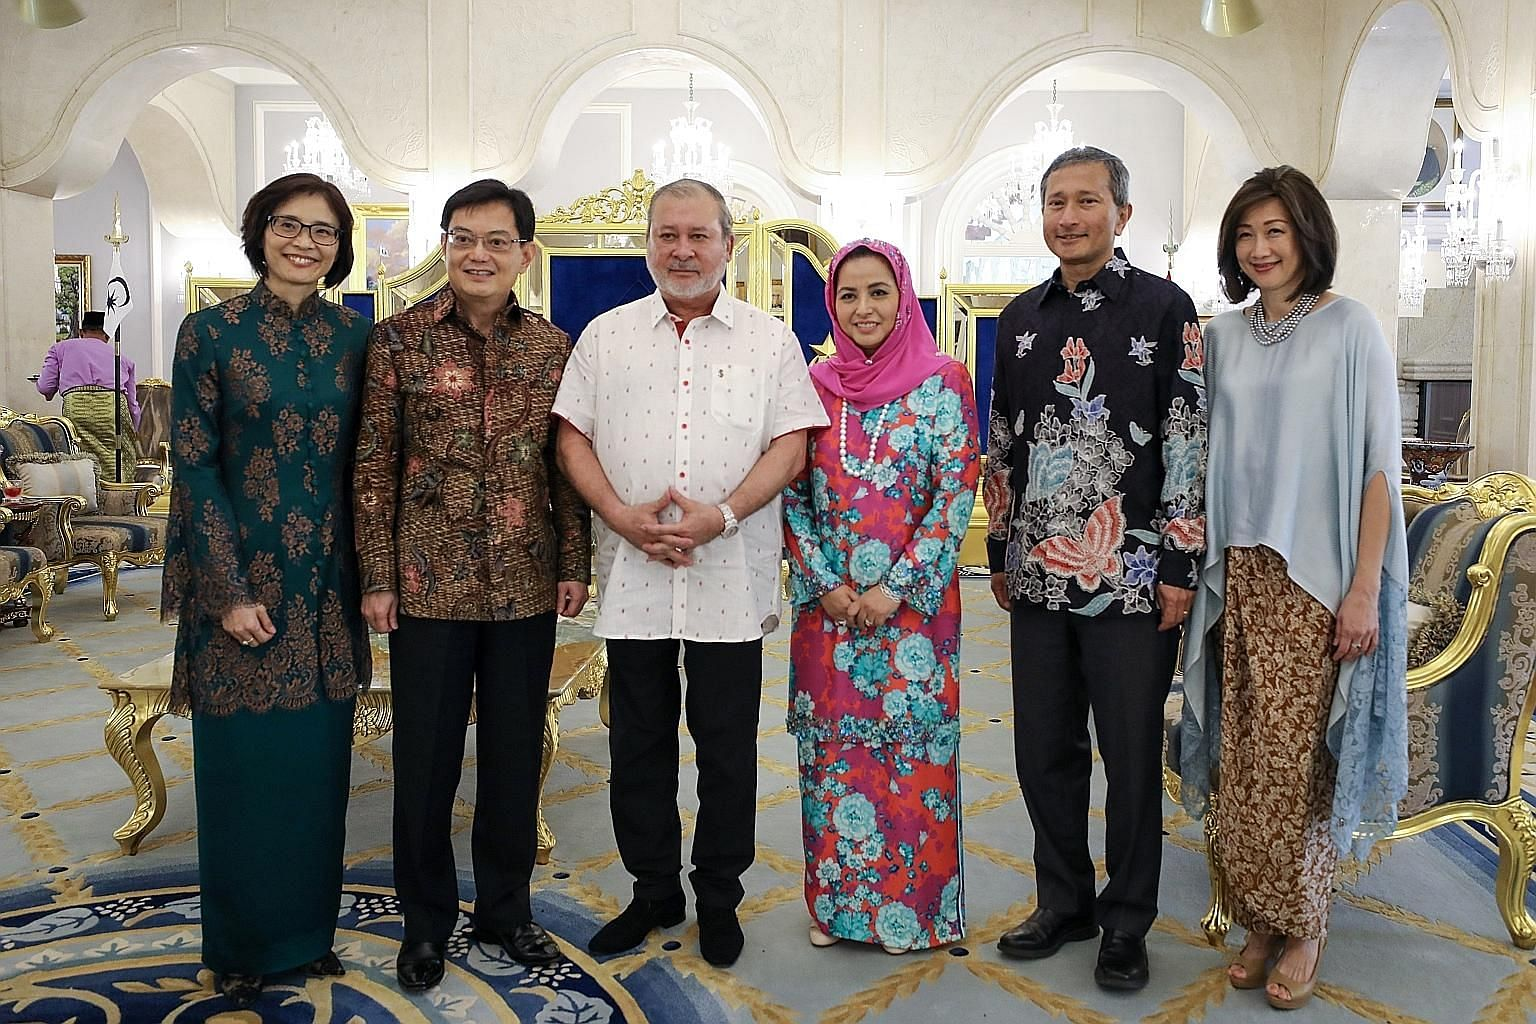 Johor's Sultan Ibrahim Sultan Iskandar and his wife Raja Zarith Sofiah with Deputy Prime Minister Heng Swee Keat and his wife Chang Hwee Nee, and Foreign Minister Vivian Balakrishnan and his wife Joy at the Istana Bukit Serene in Johor Baru yesterday